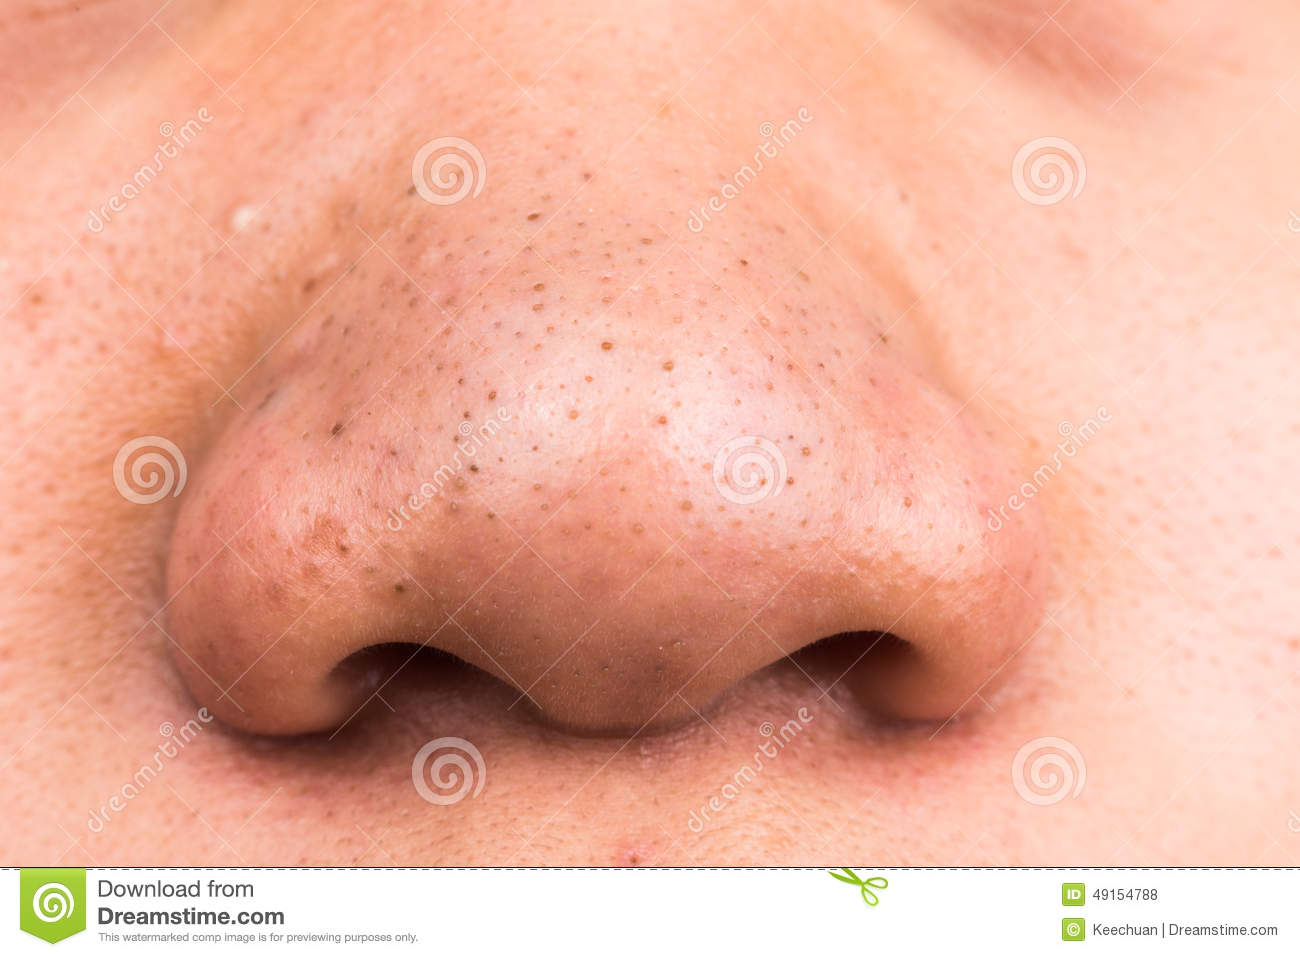 Closed-up Of Pimple Blackheads On The Nose Stock Photo - Image of